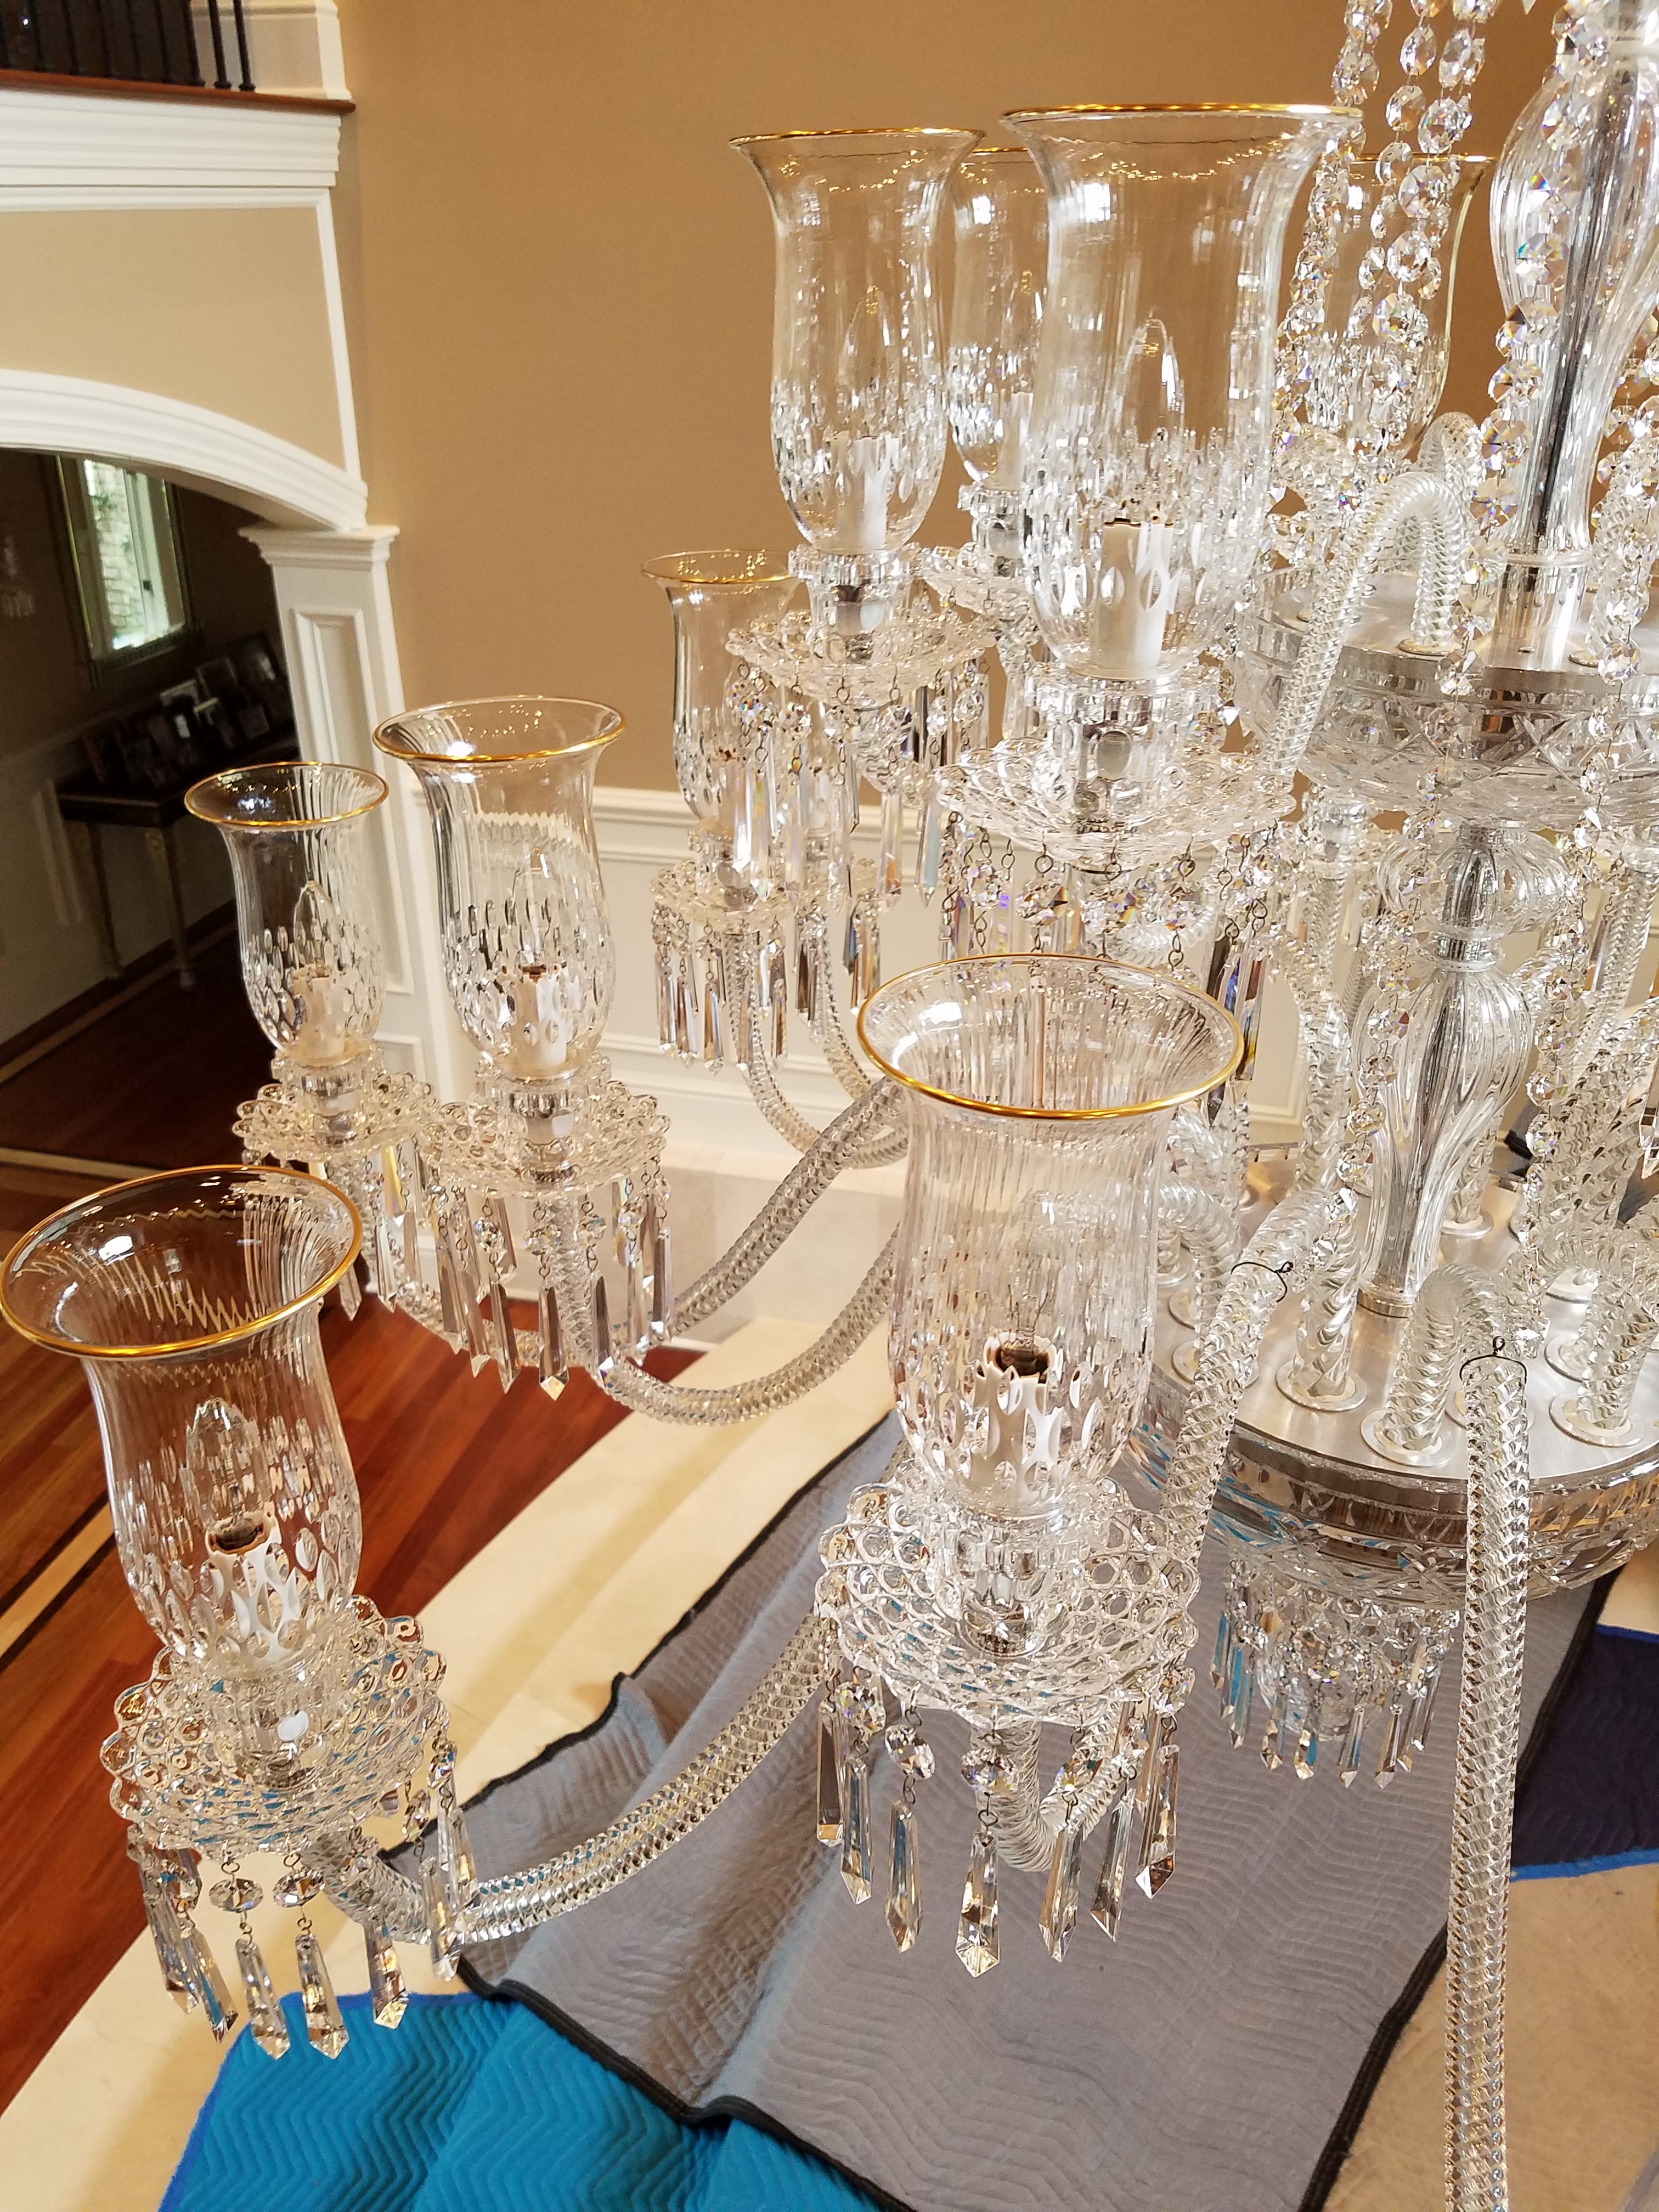 Chandelier Restoration Manhattan Ny Expert Lighting Inc Cleaning And Rewiring Chandeliers After